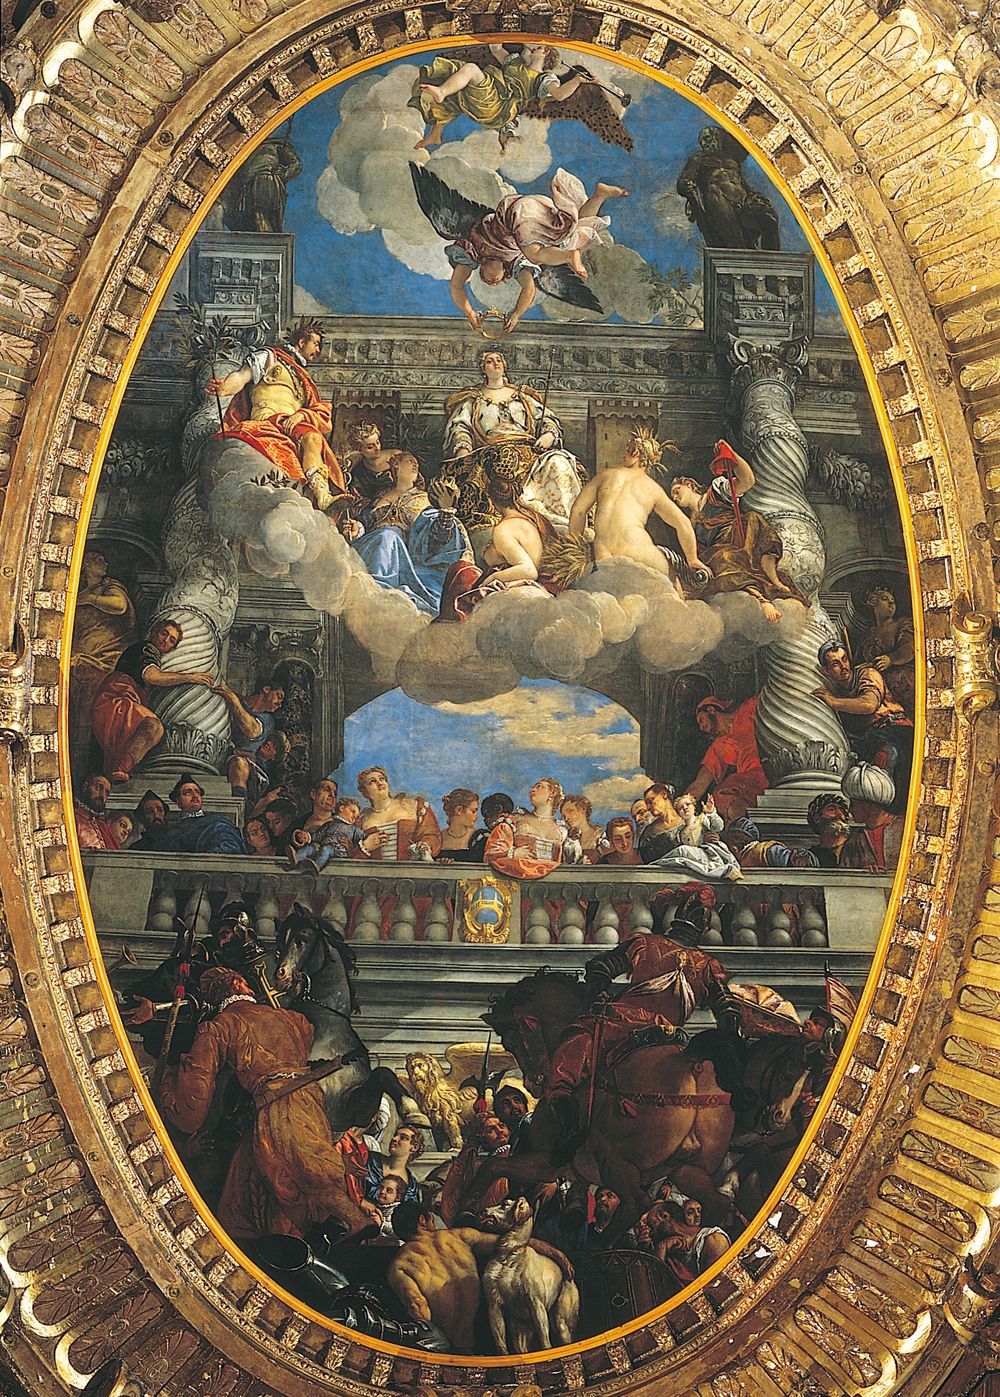 veroneses triumph essay Rubens catologue of works hourticq - ebook download as pdf file (pdf), text file (txt) or read book online  owes to fill italy 29 in front of the great paintings of veronese and the frescoes of raphael the trophies of a triumph  tians and also modern paintings seven veroneses classic statues that hall was and valuable paintings.